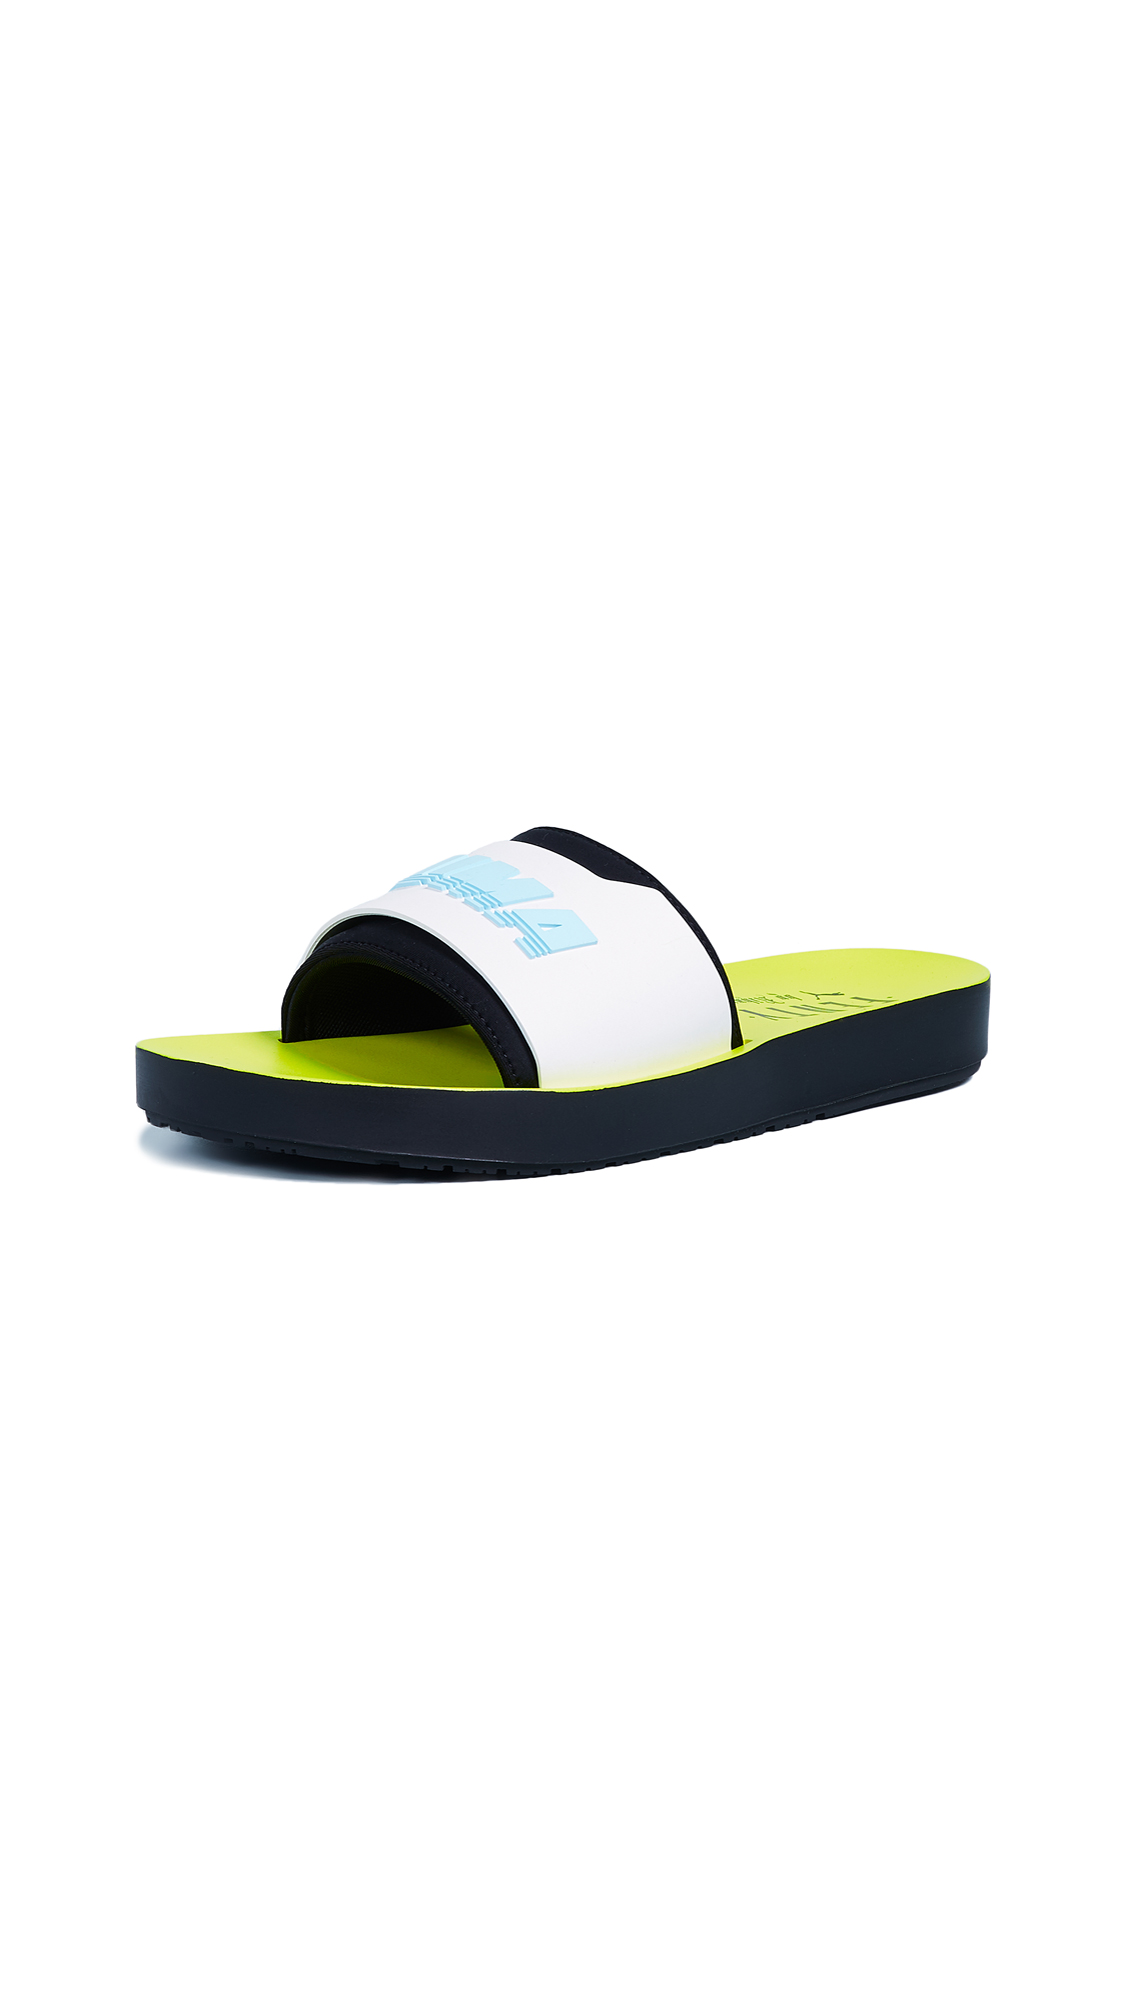 PUMA FENTY x PUMA Surf Slides - Black/White/Safety Yellow